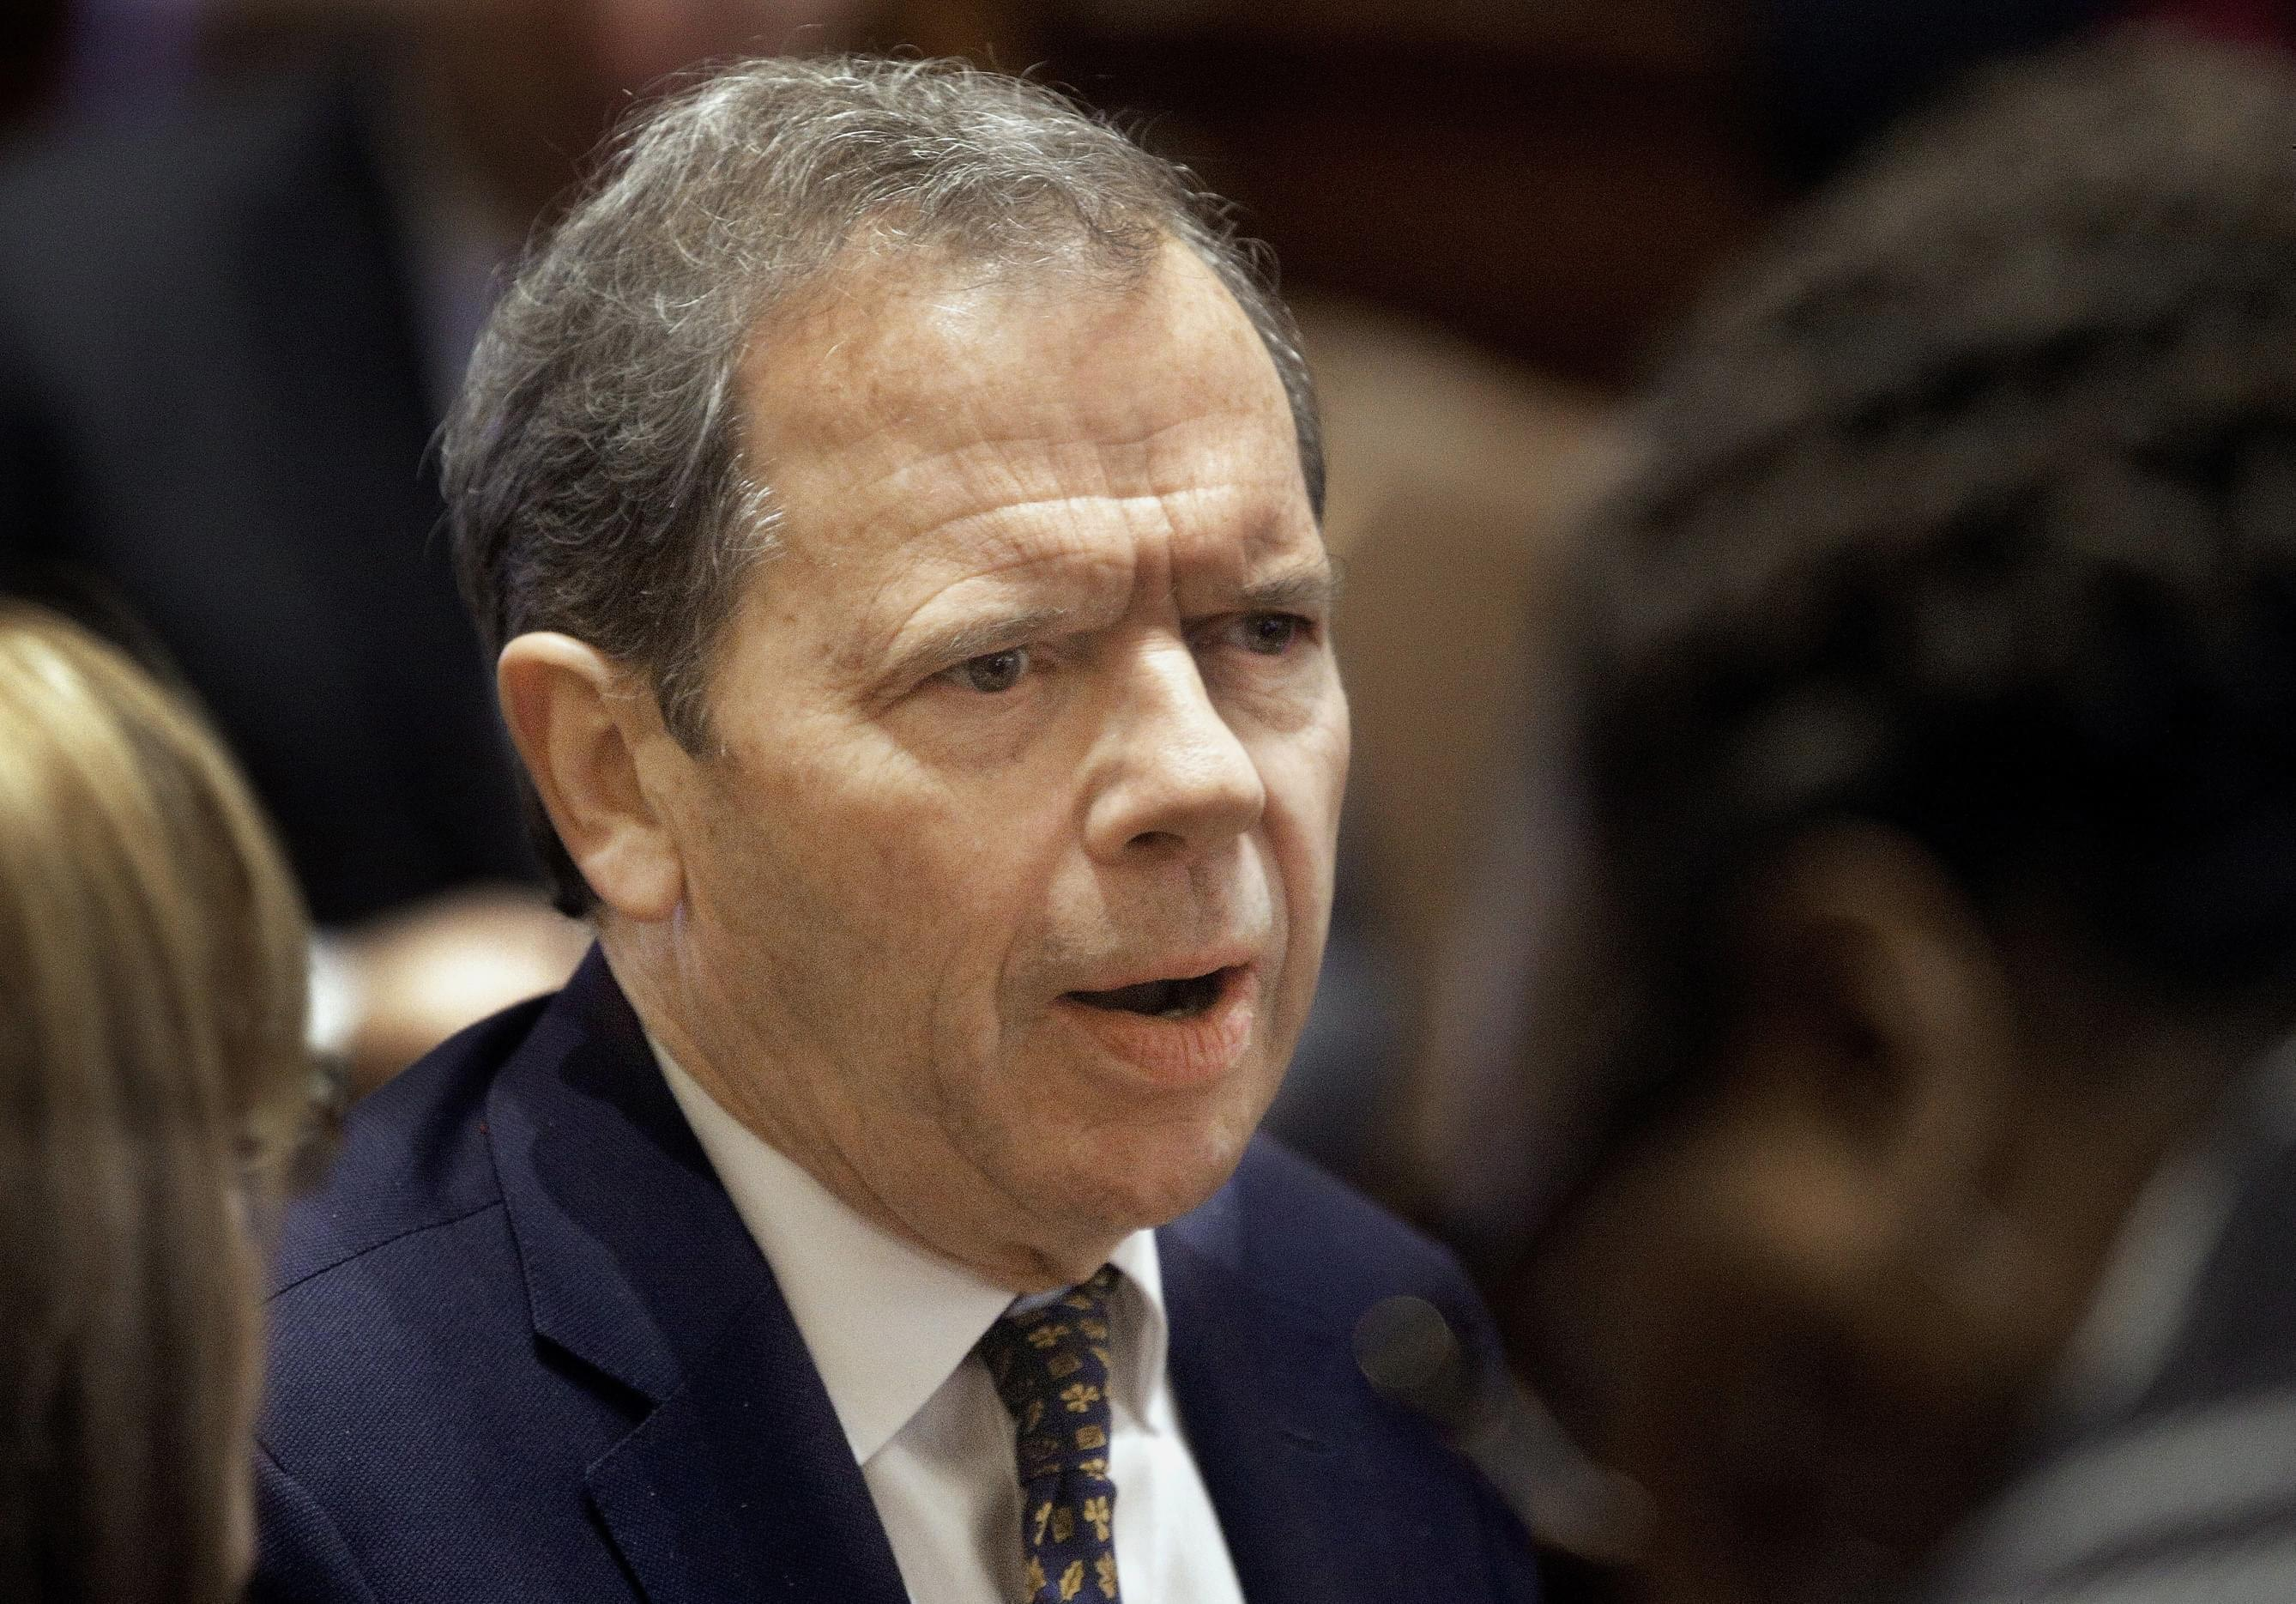 Illinois Senate President John Cullerton, D-Chicago, speaks to lawmakers while on the Senate floor during session at the Illinois State Capitol Monday, Dec. 7, 2015, in Springfield, Ill. Illinois Senate convenes to address a compromise spending bill